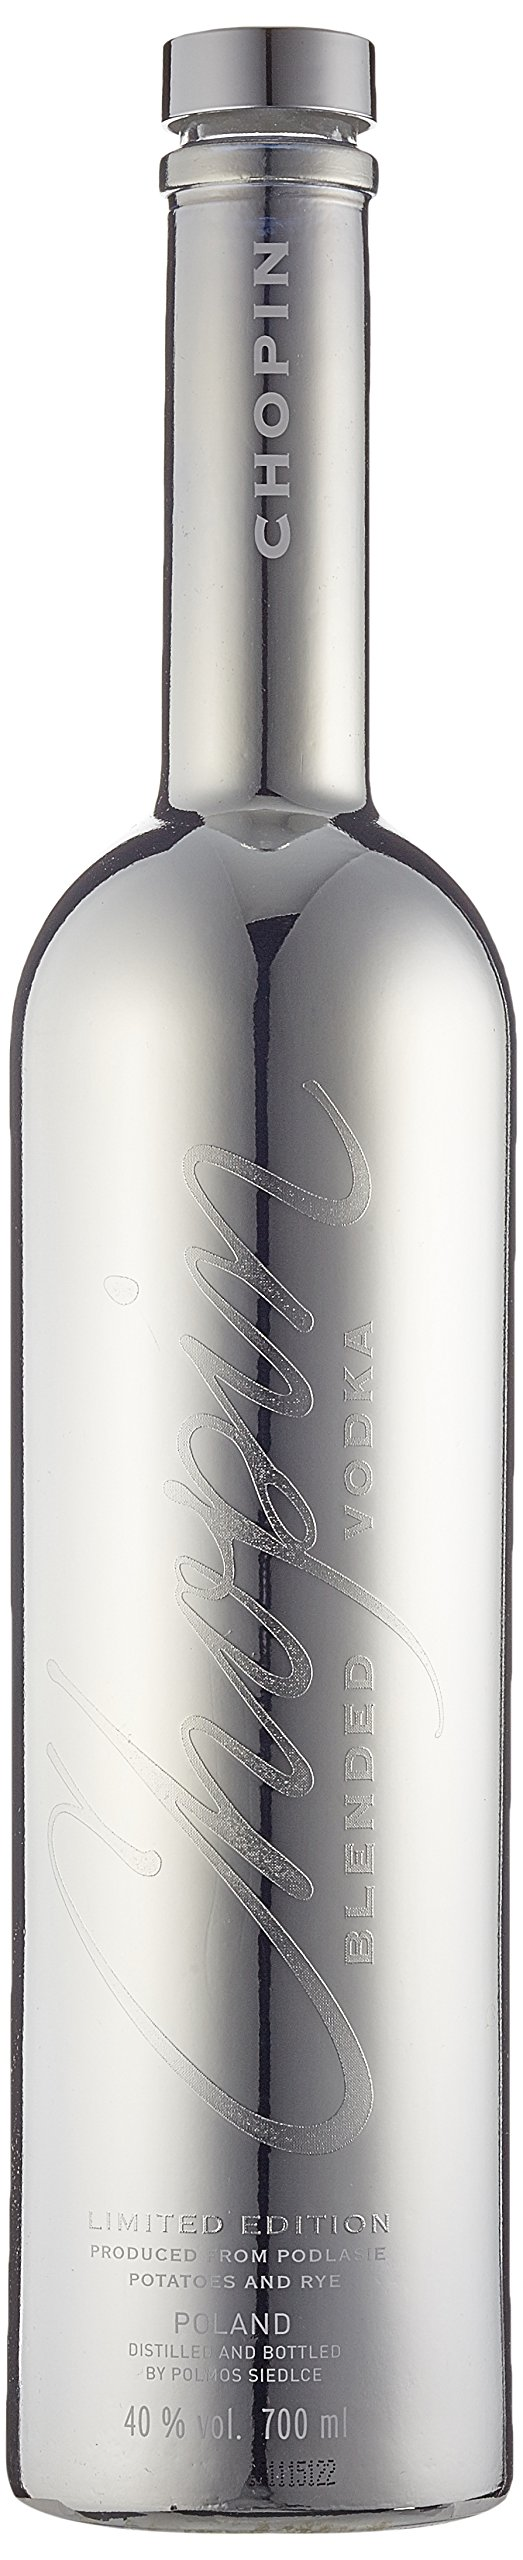 Chopin-Blended-Vodka-Silver-Limited-Edition-1-x-07-l